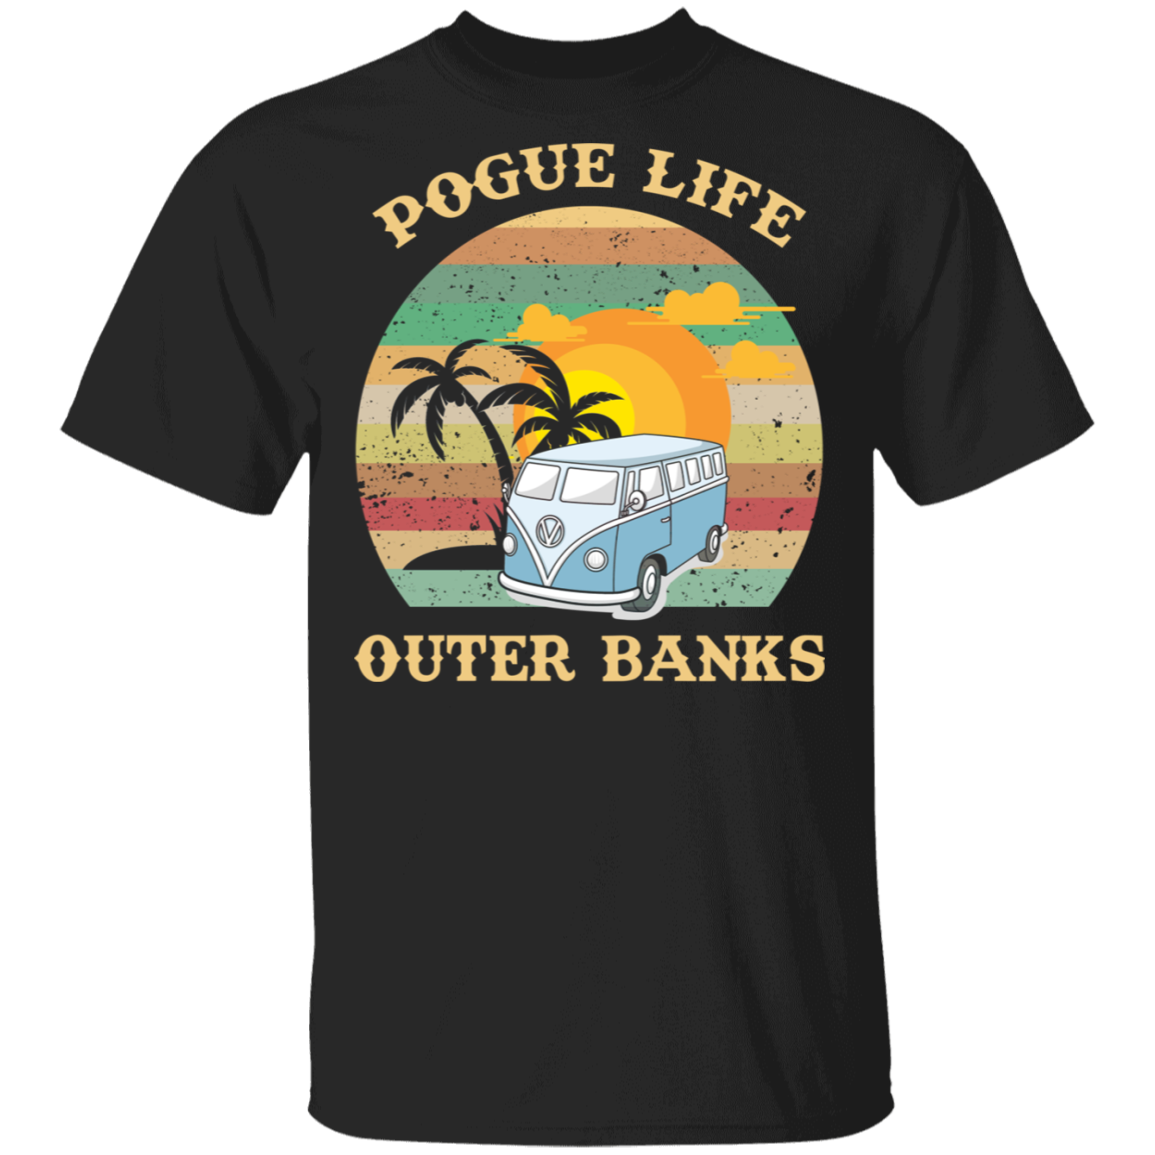 Pogue Life Outer Banks T-Shirt Volkswagen Seasonal Vacation Retro Vintage Tee Gift For Friend